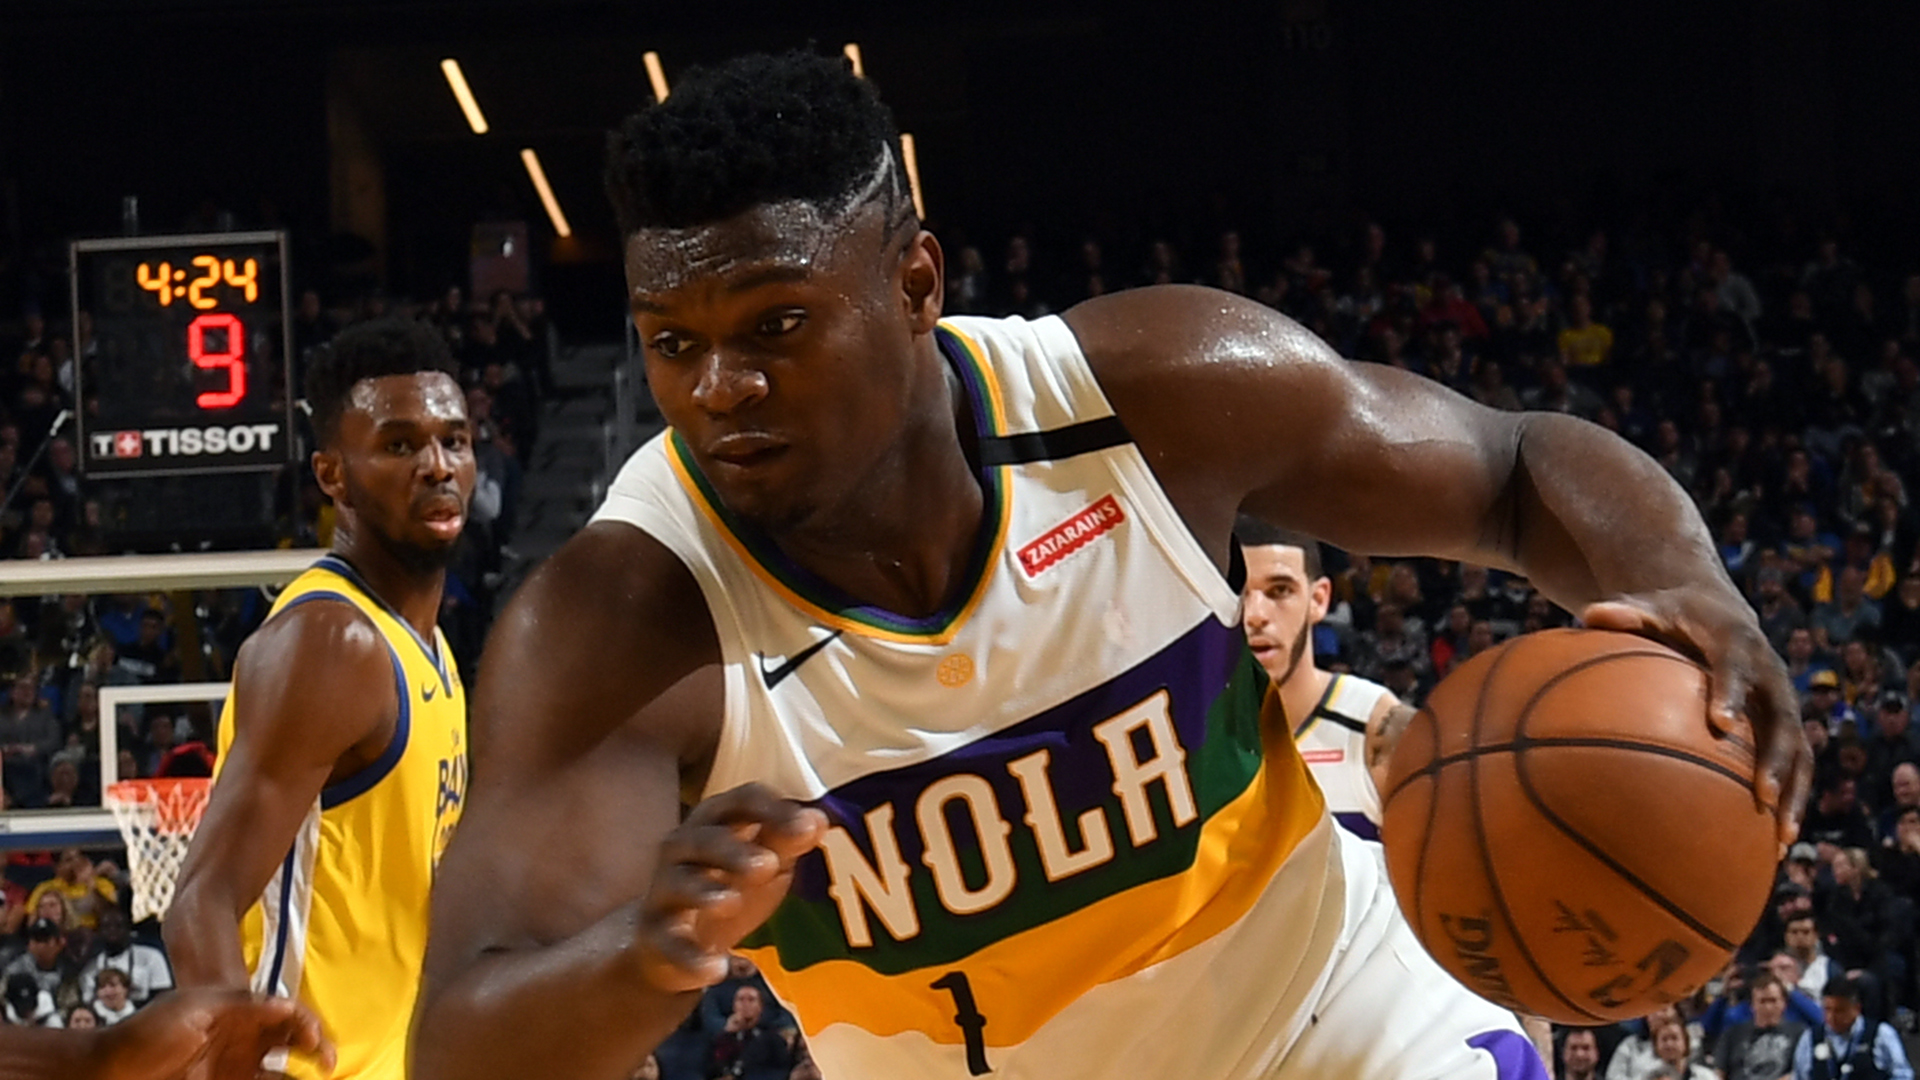 Zion, Pelicans primed for last-gasp bid to make postseason